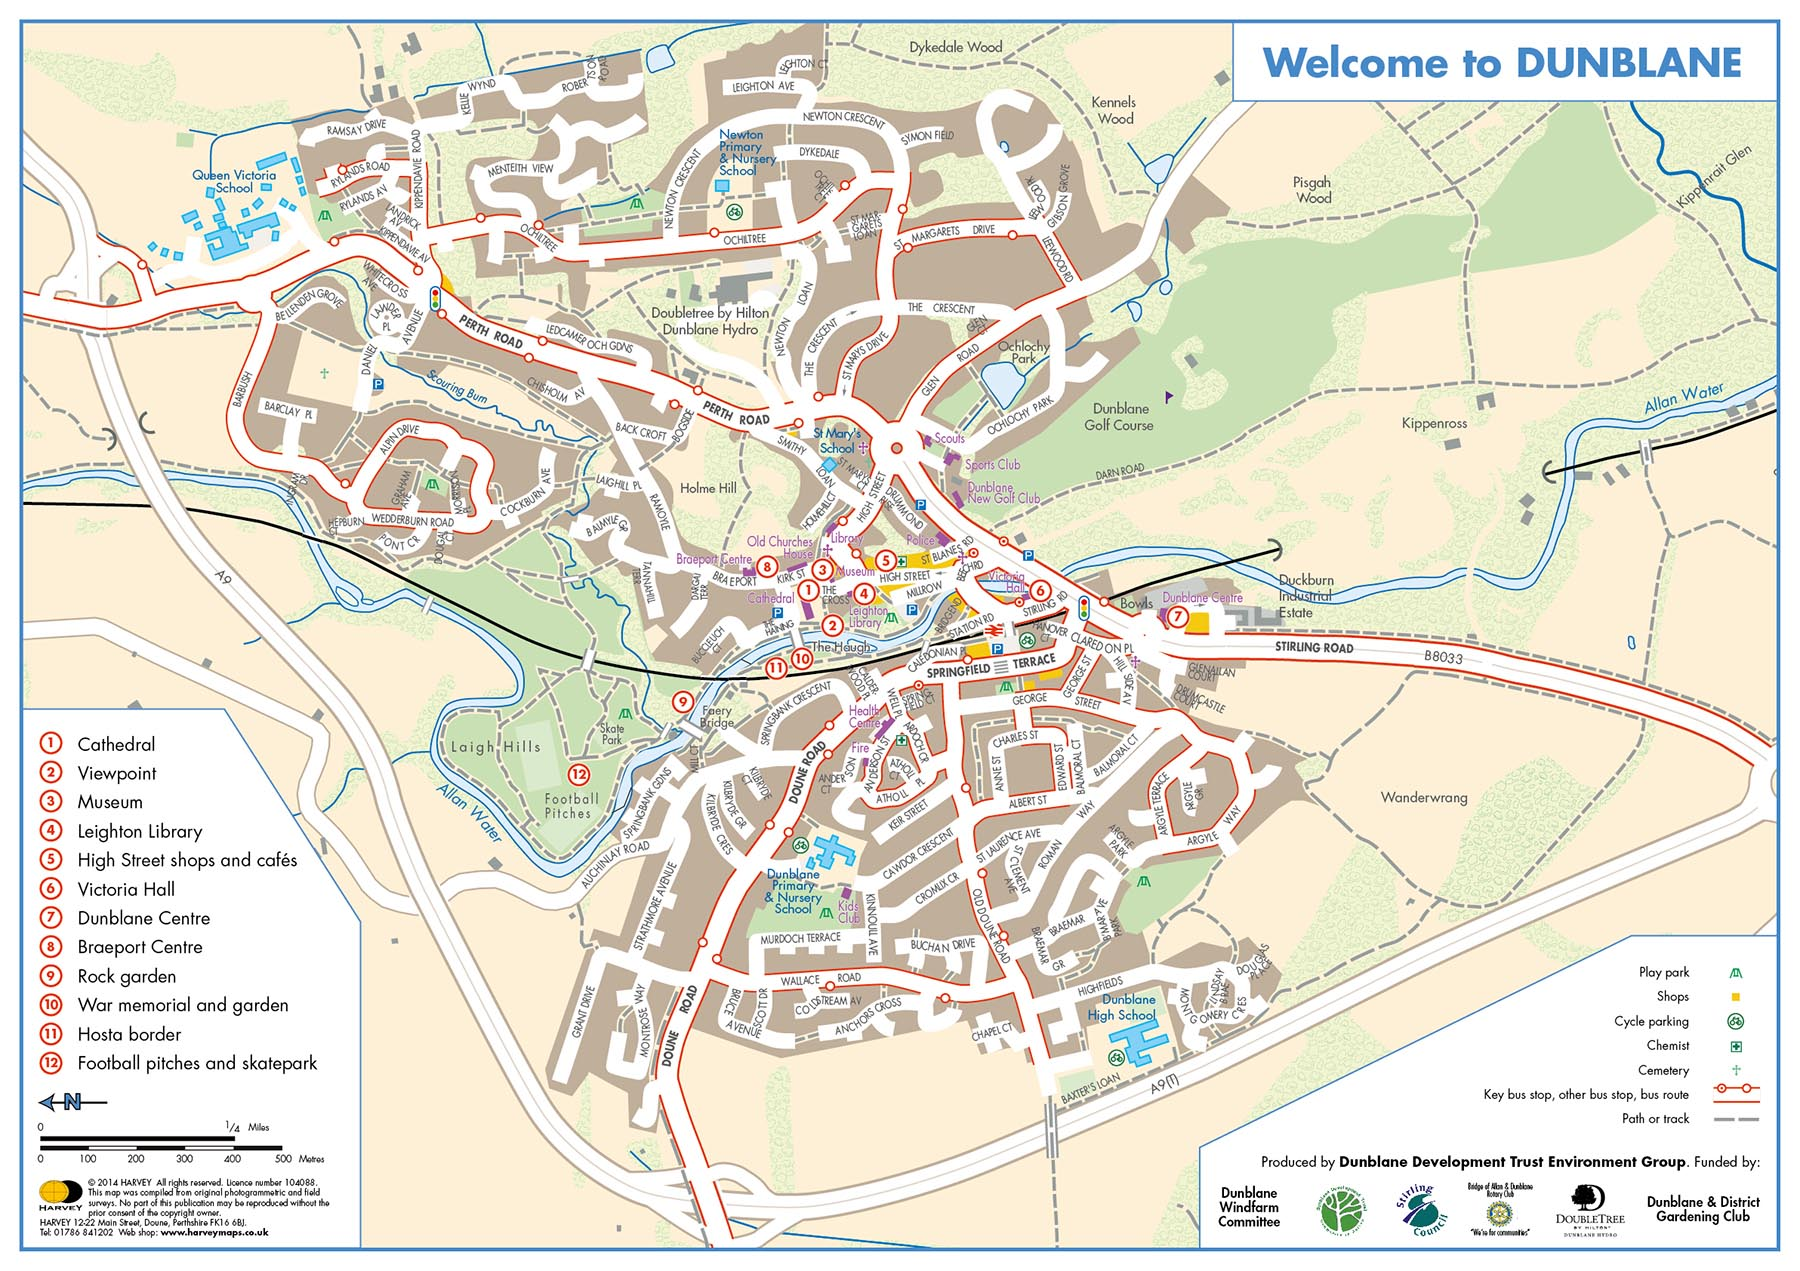 Welcome to Dunblane map